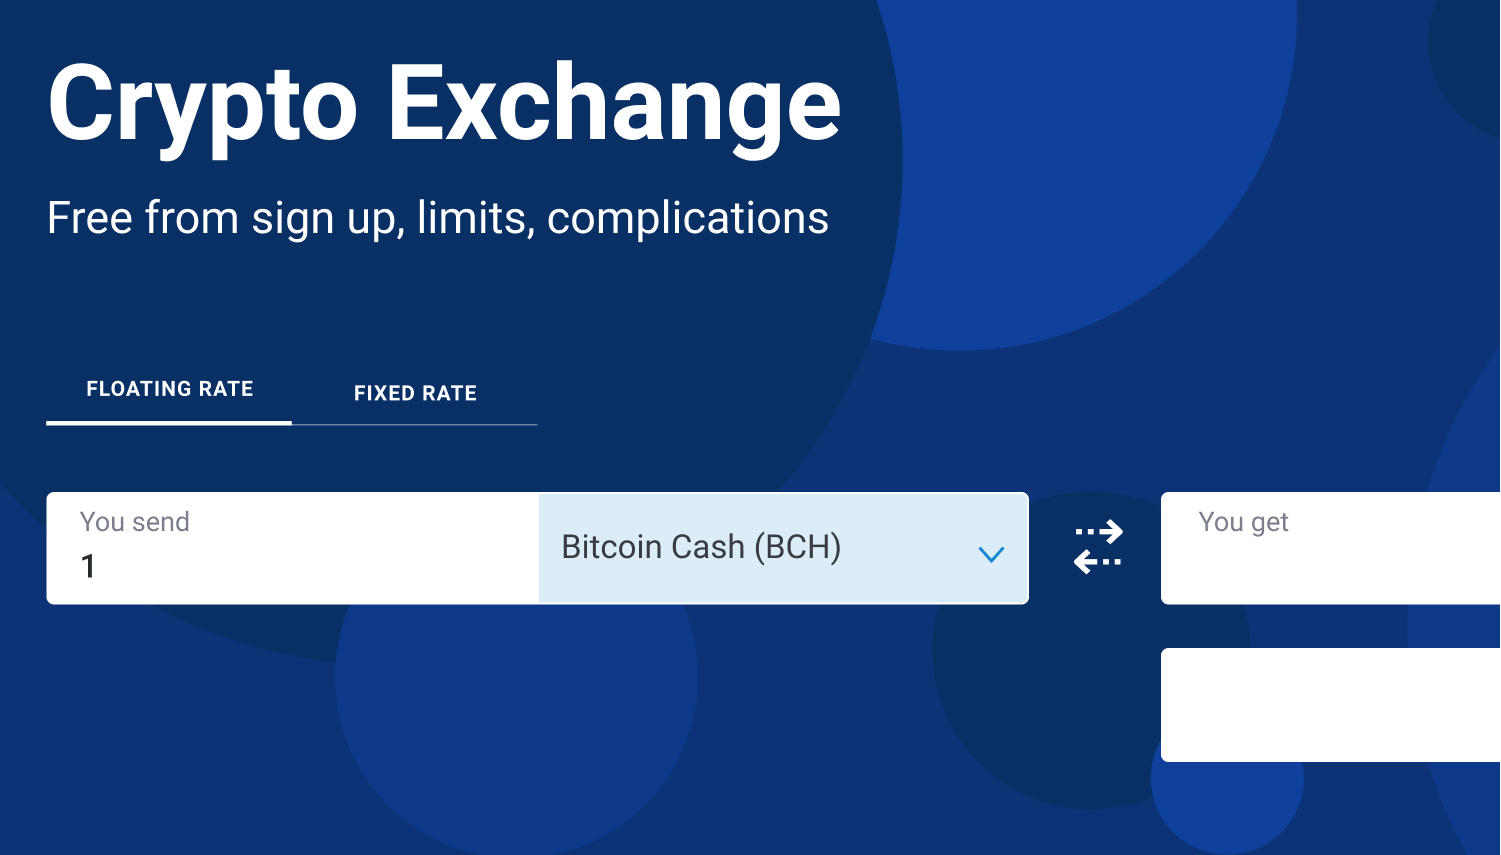 enter the amount of Bitcoin Cash to exchange